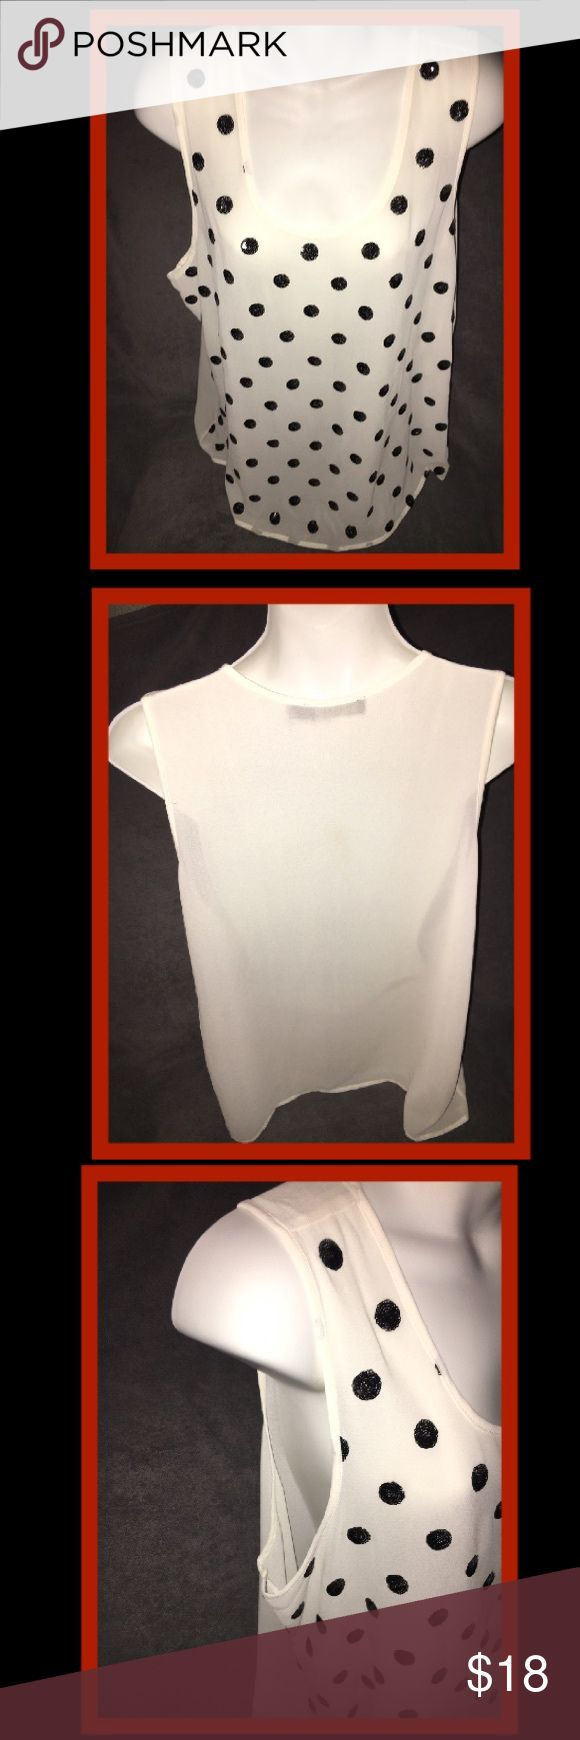 Limited Top A beautiful sheer top in a women's size extra large from the clothing line The Limited it's solid white with black sequence circles all over it it's a 100% polyester so it's soft comfortable and lightweight and it comes from a smoke and pet free home The Limited Tops